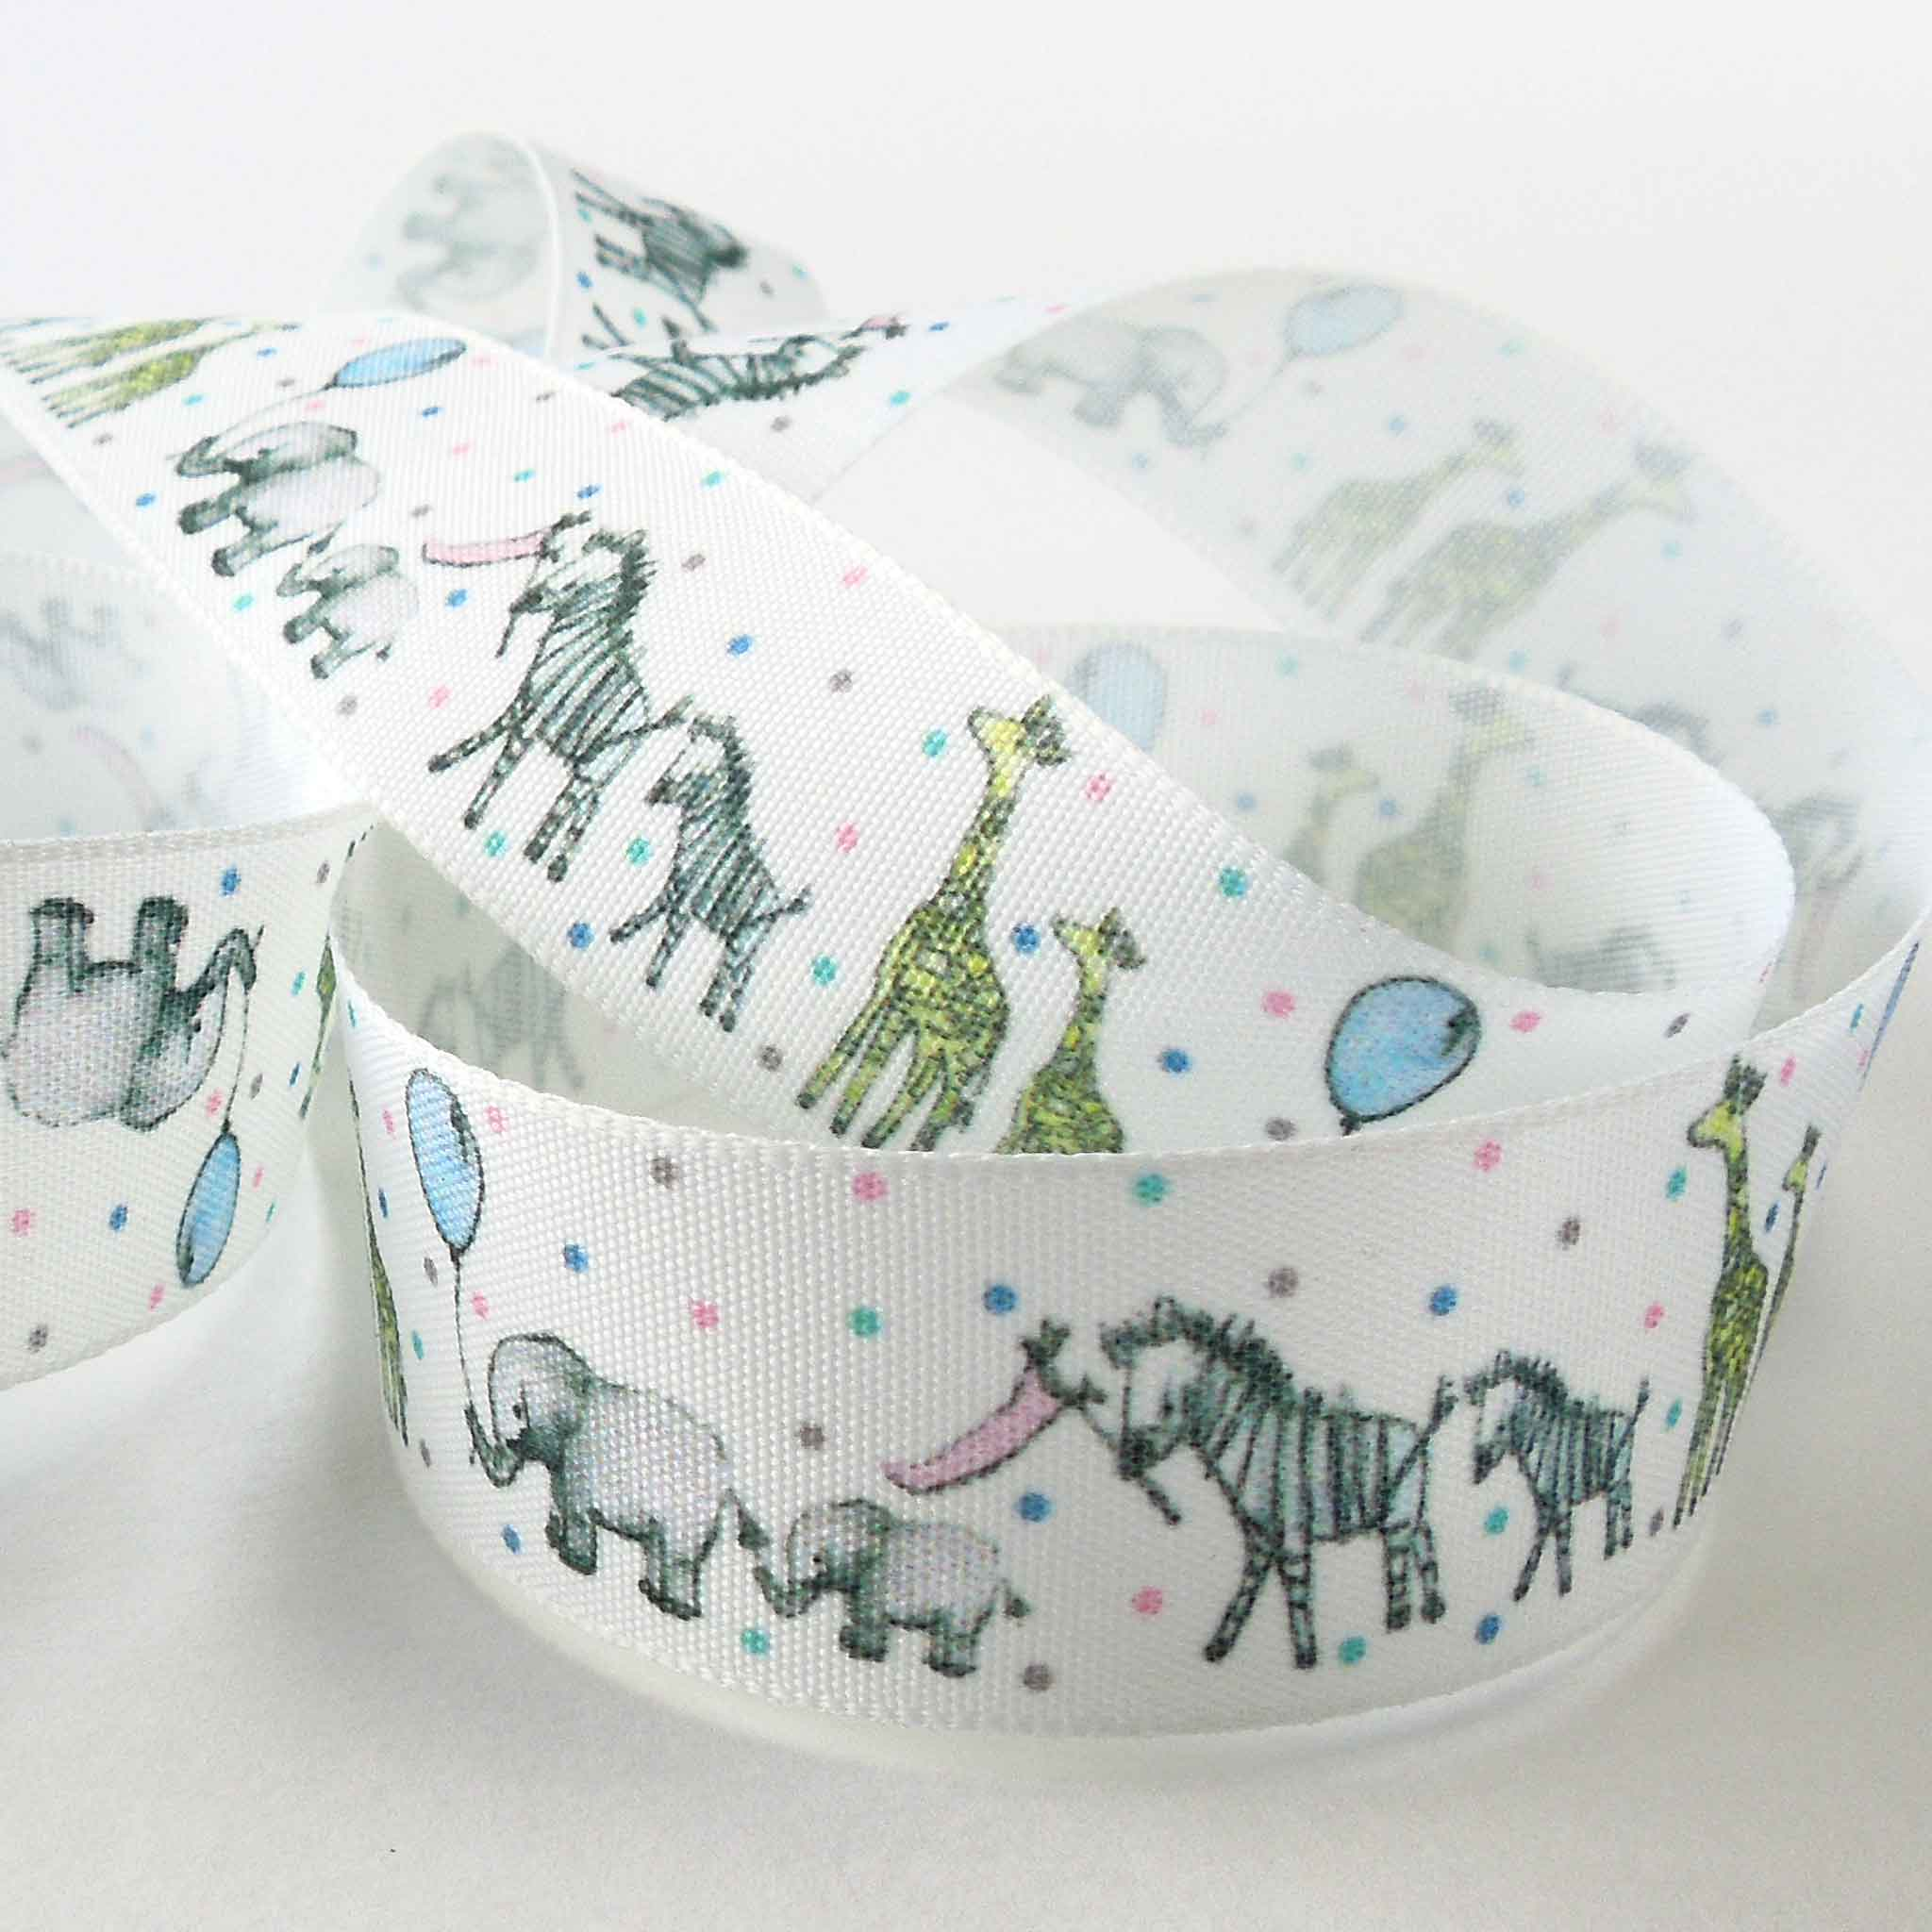 25 mm White Baby Animal Parade Ribbon, 1 inch Baby Animal Two by Two Fabric Ribbon - Fabric and Ribbon